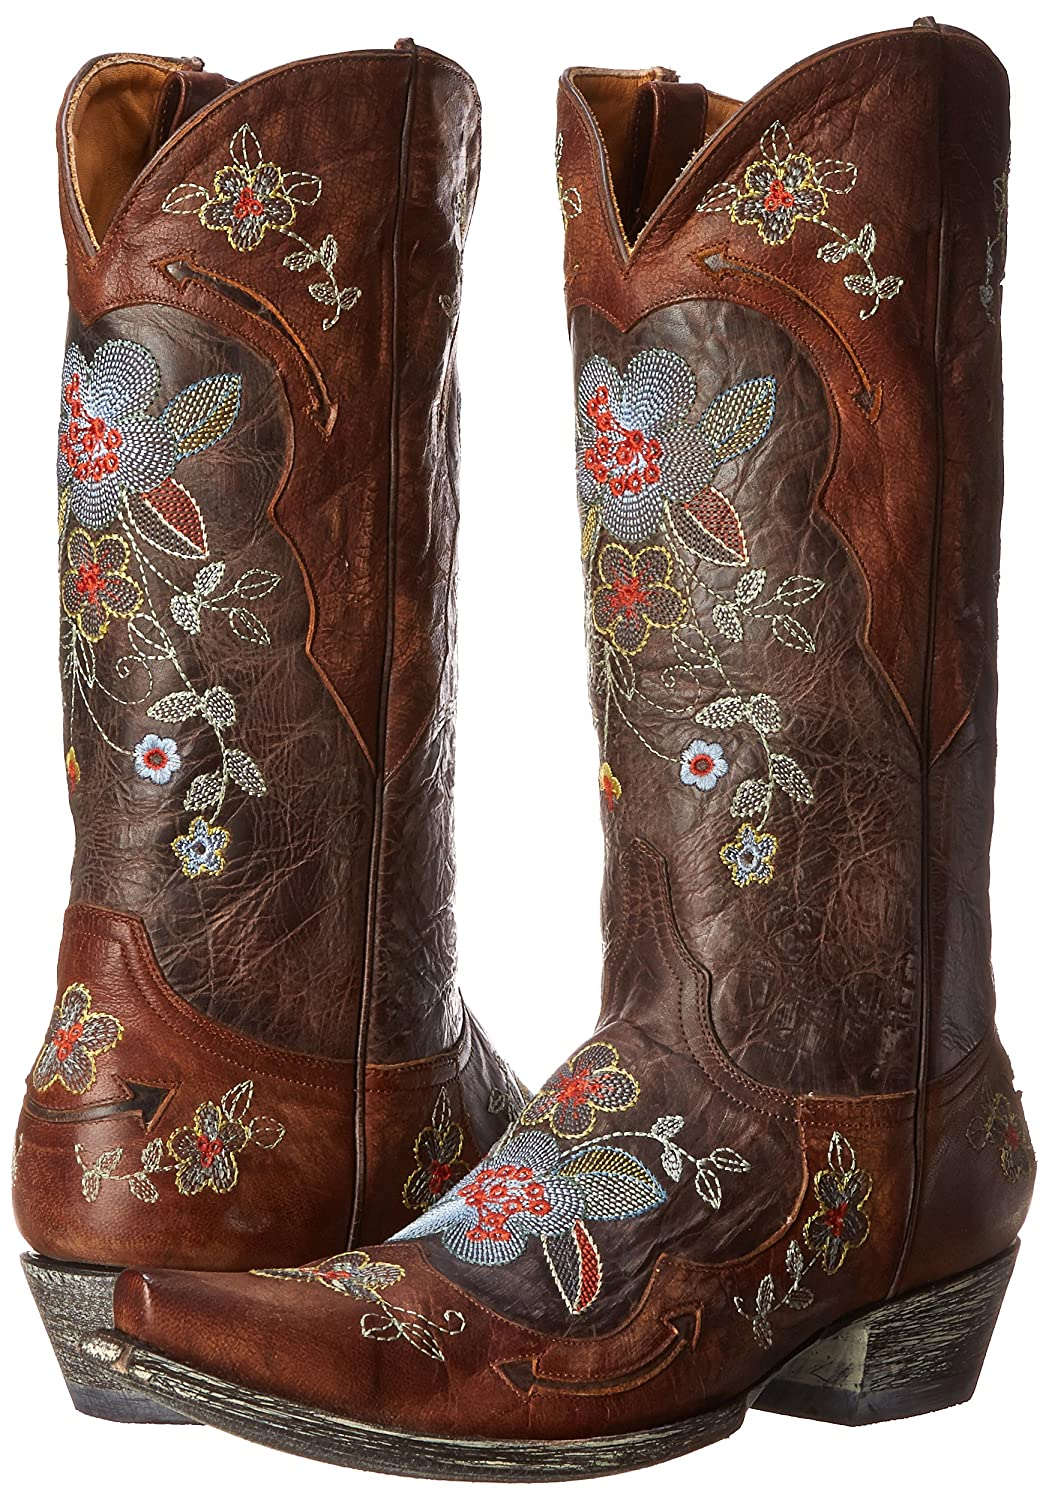 Old Gringo Women's Bonnie Western Boot B0059NUQ48 8.5 B(M) US|Chocolate/Brass